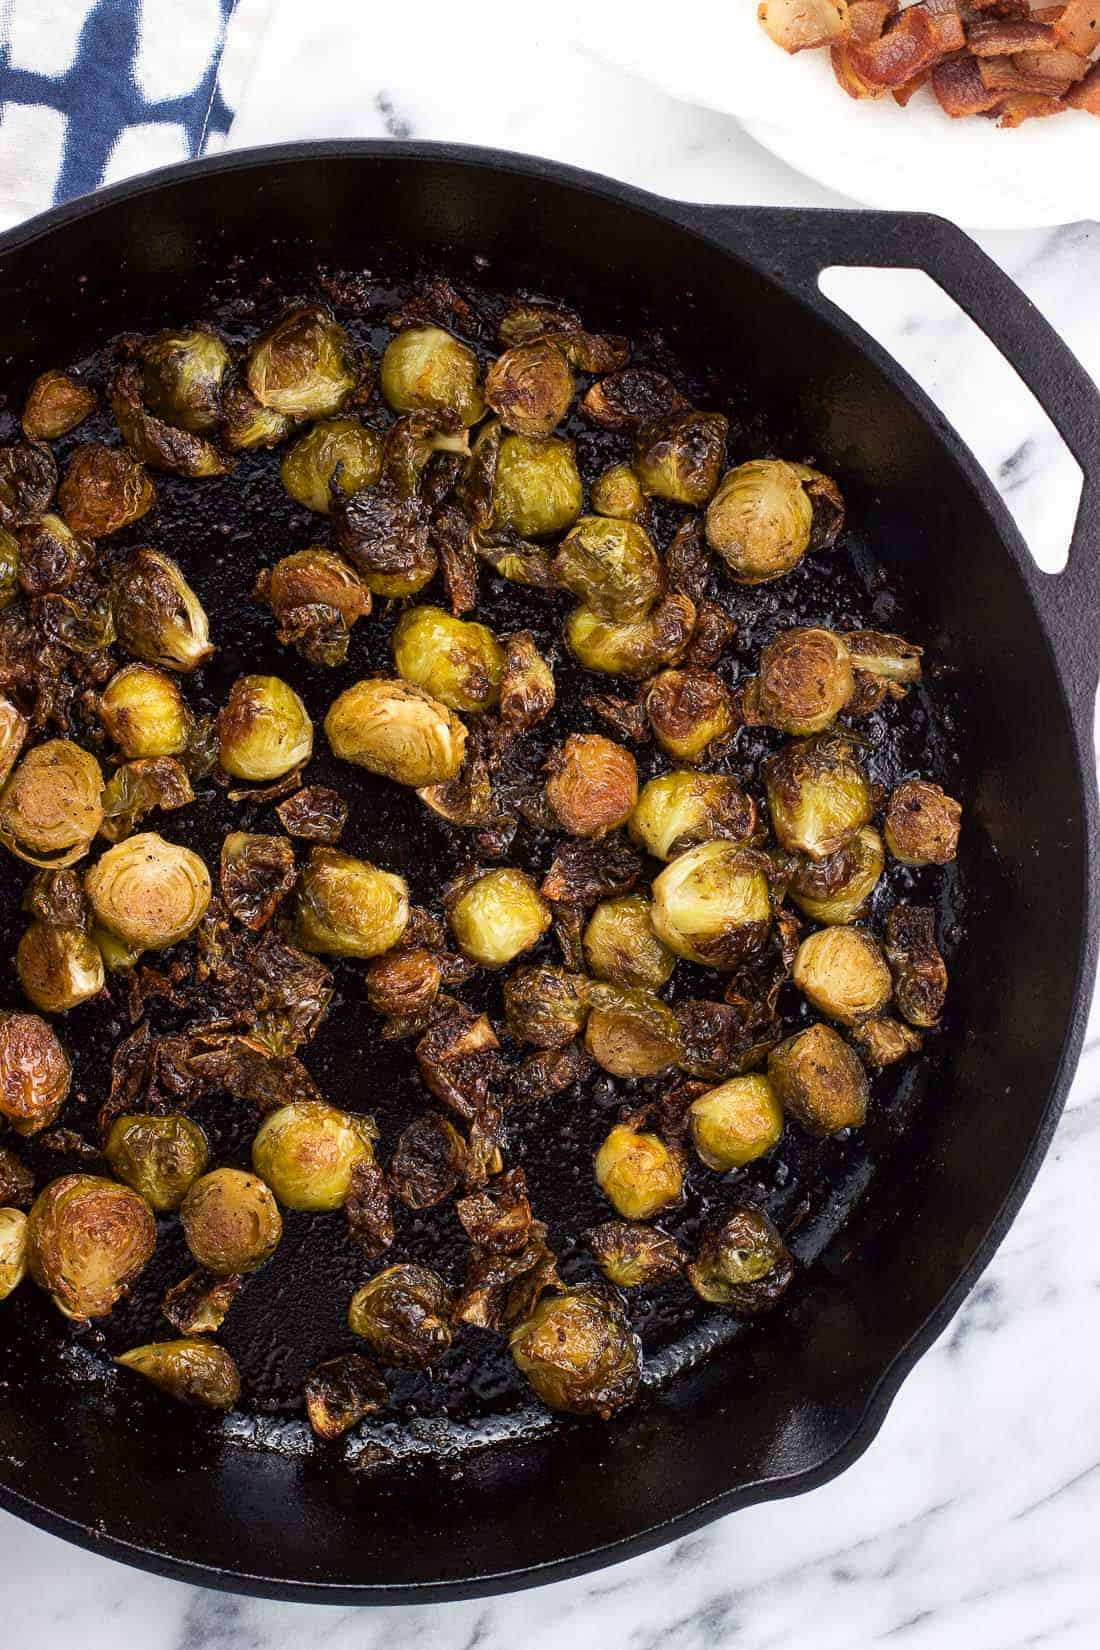 An overhead view of roasted brussels sprouts in a cast iron skillet